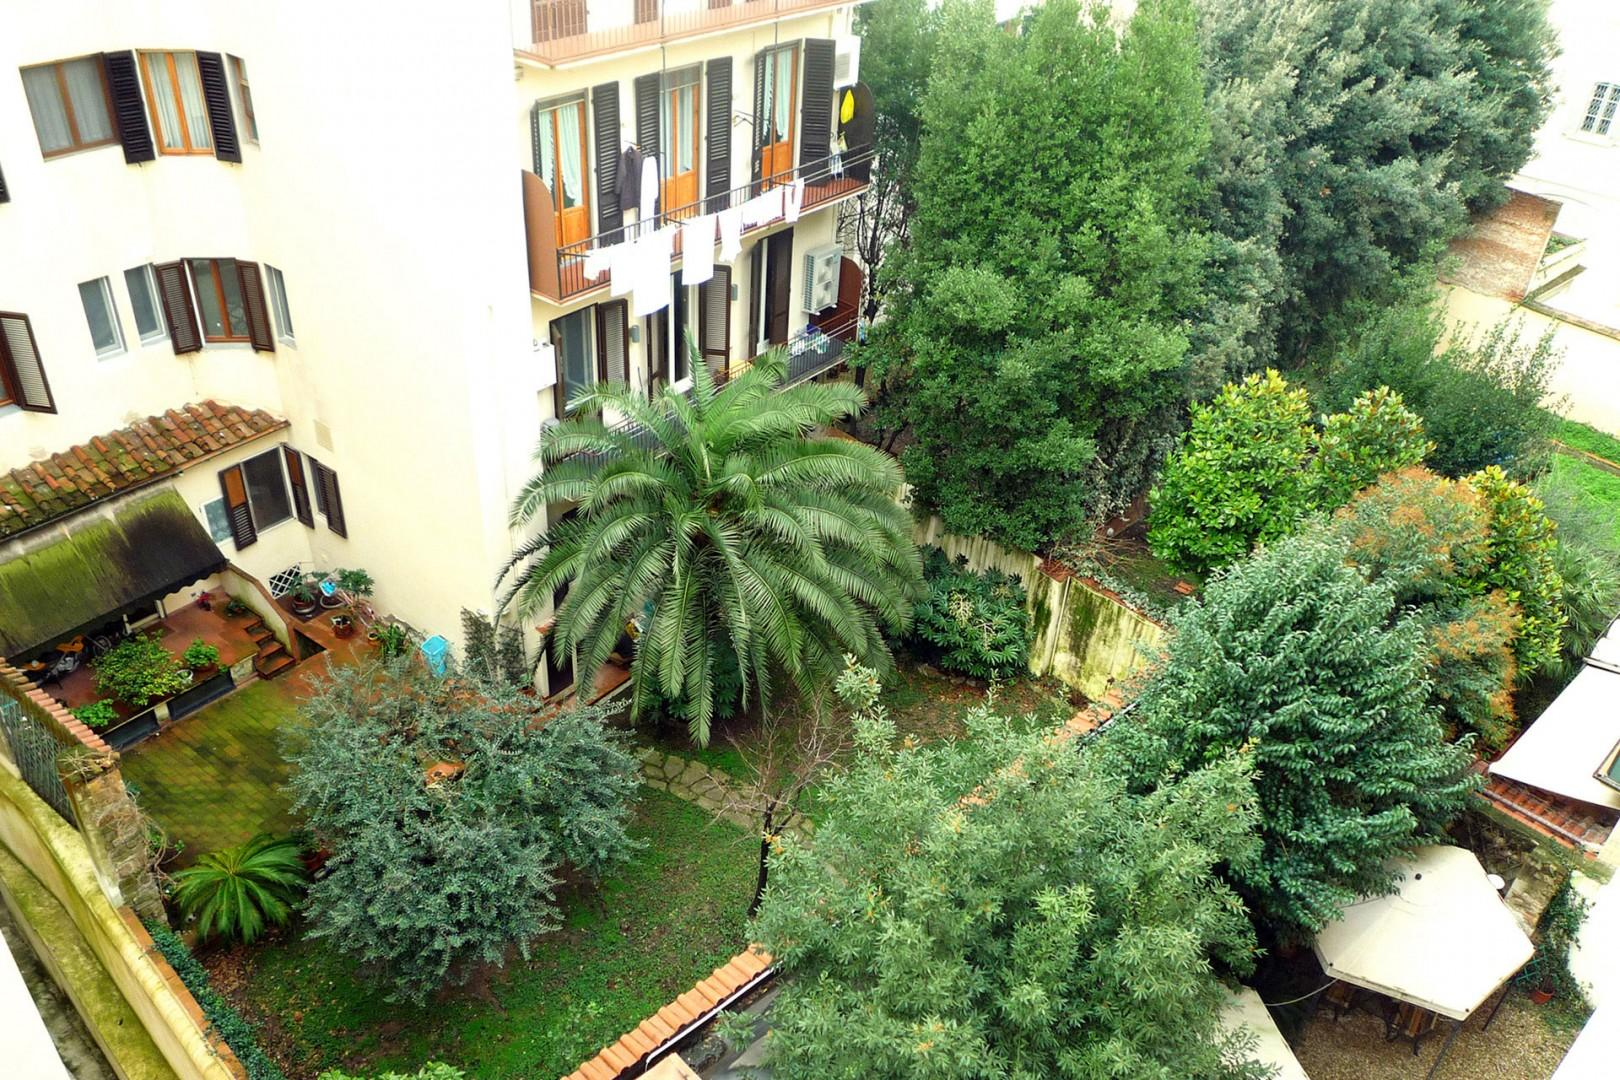 Balcony, kitchen and bedroom 1 have pleasant, peaceful views of back gardens.